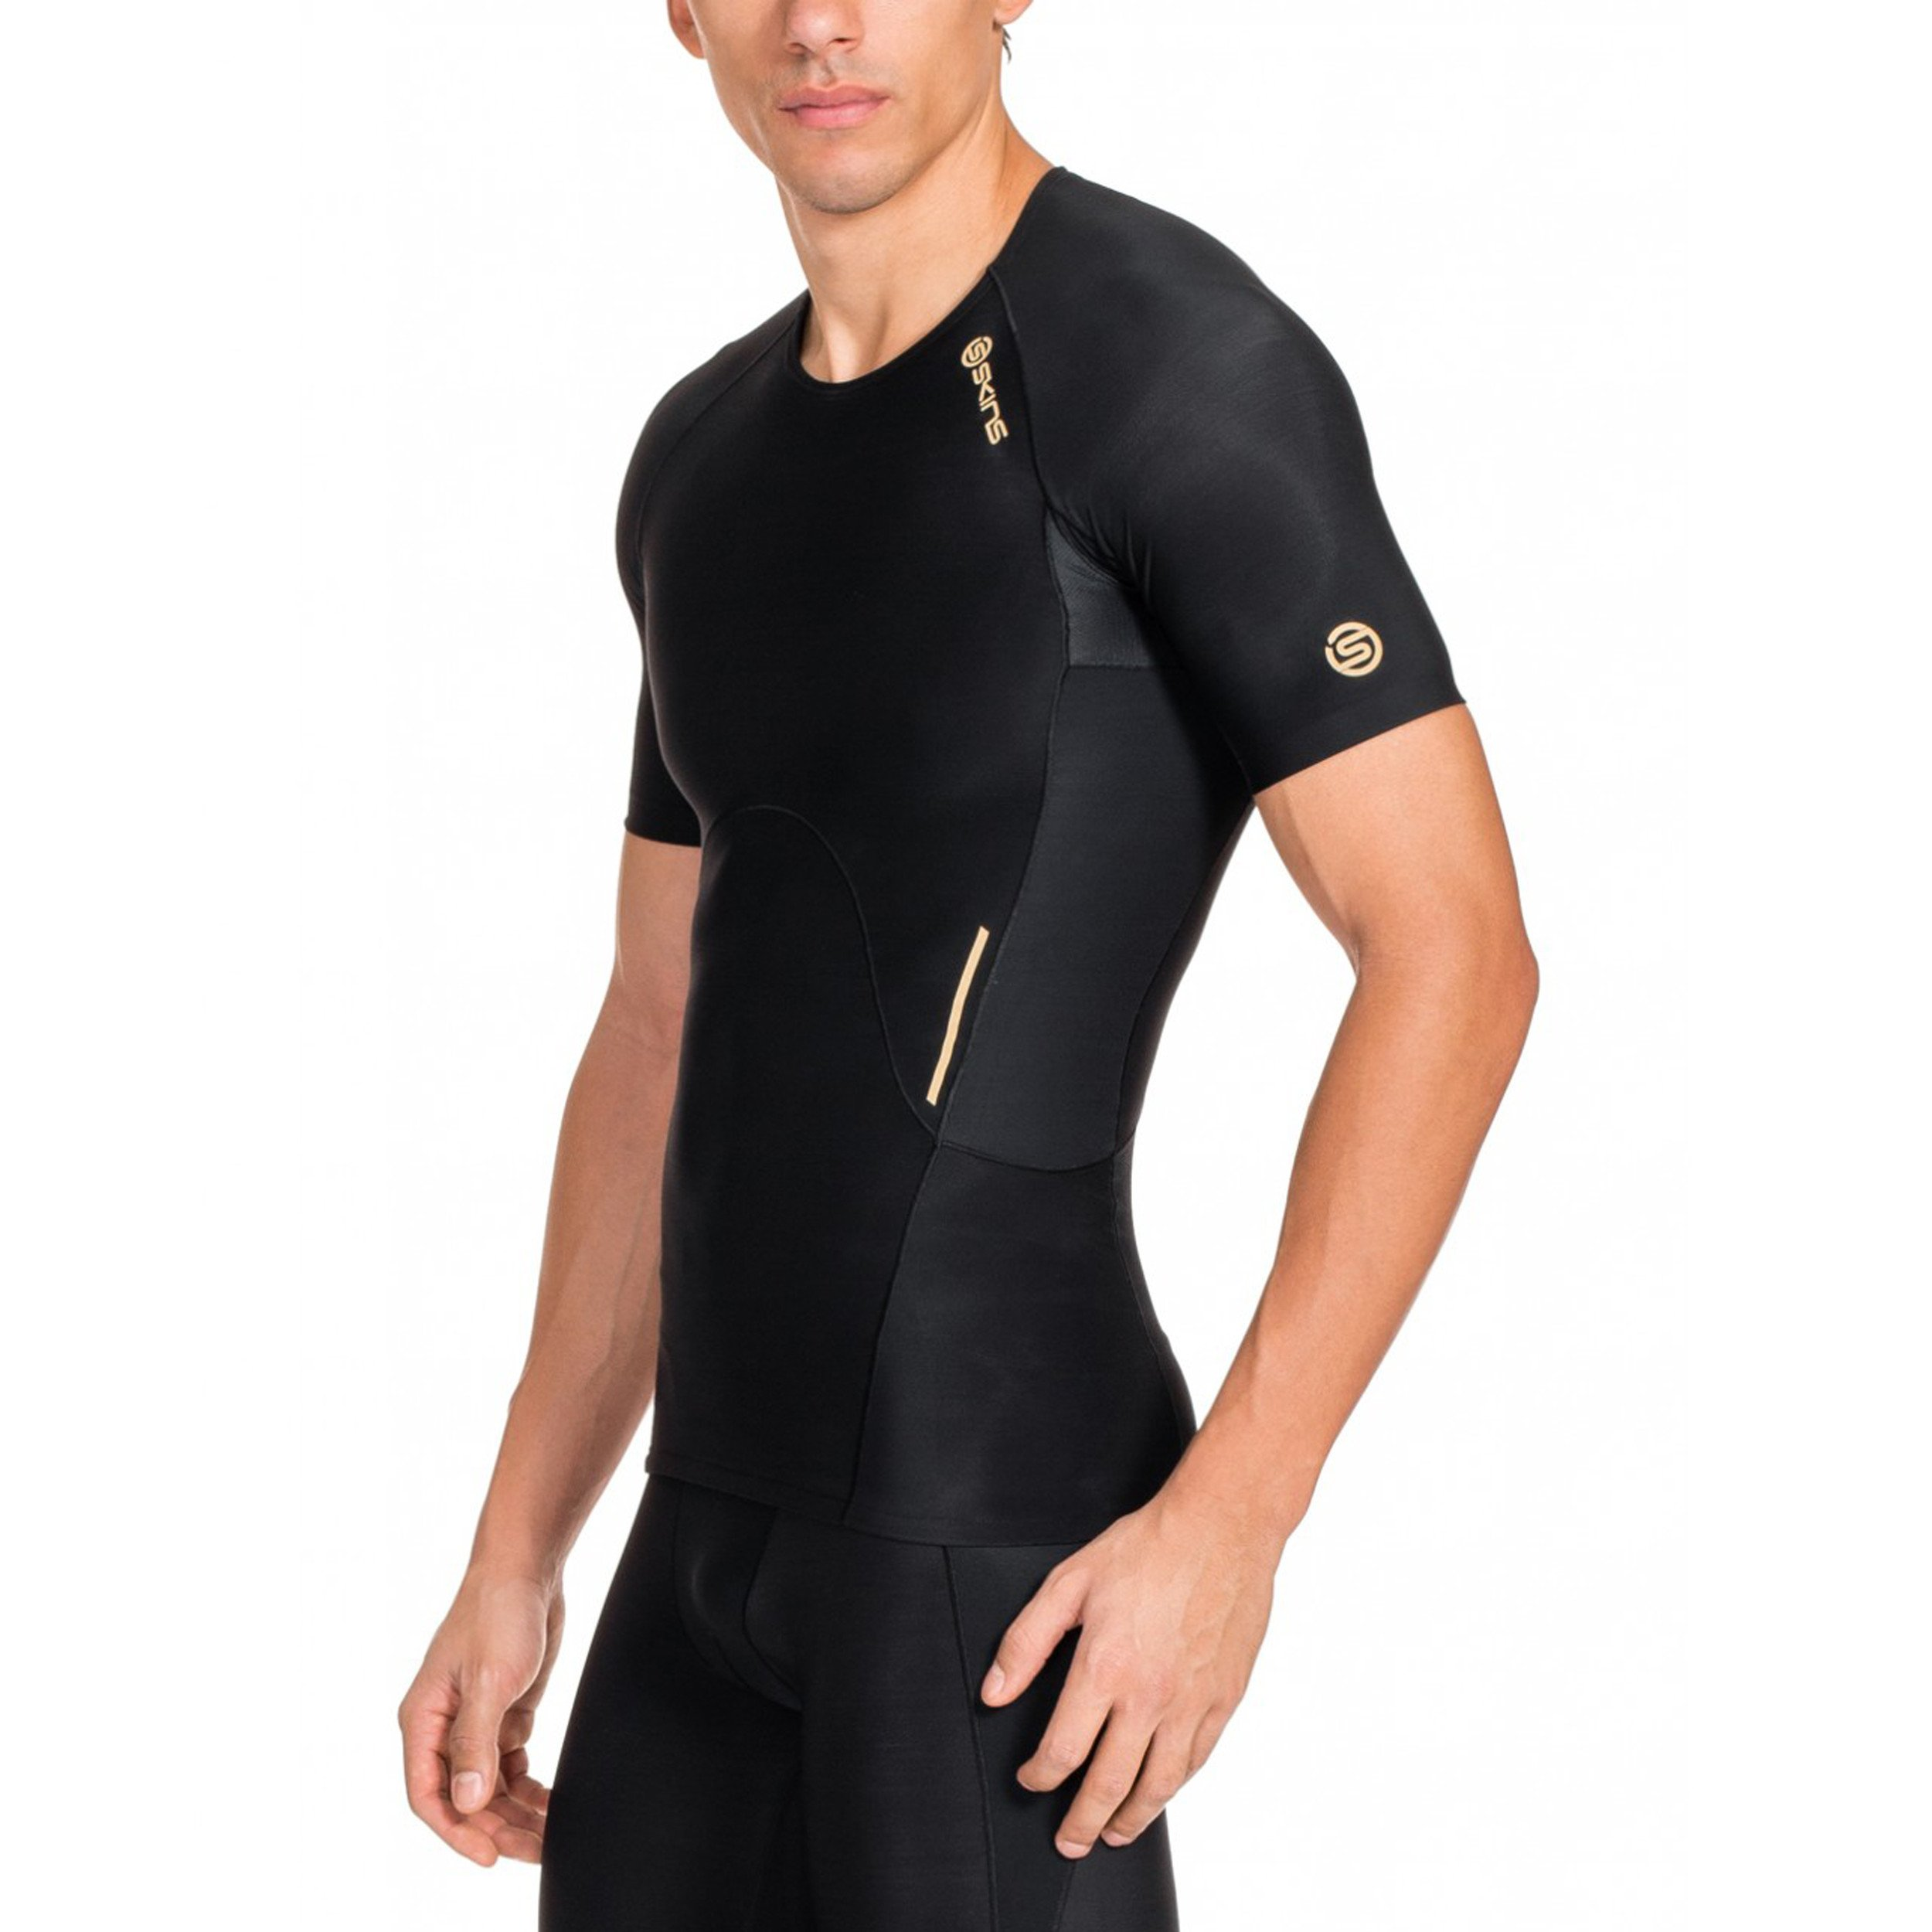 Skins Men's A400 Short Sleeve Compression Top, Black, Small by Skins (Image #4)